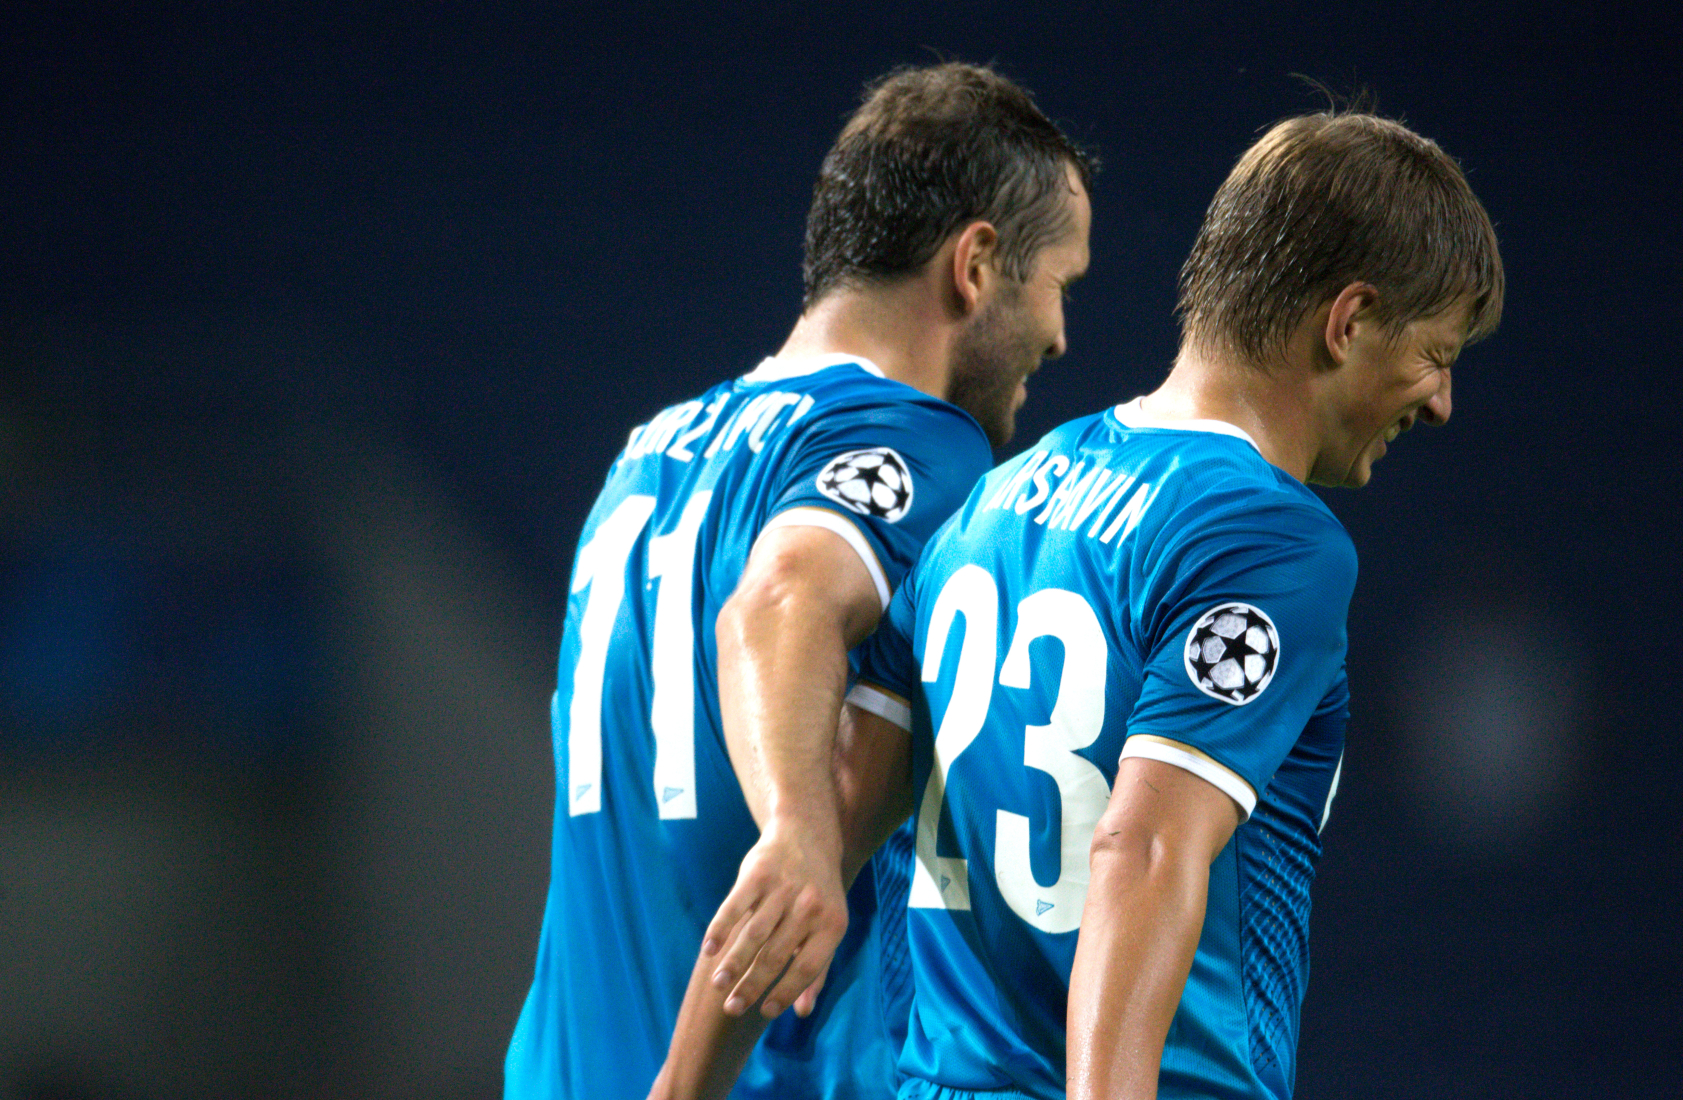 Zenit St. Petersburg – The End Of An Era